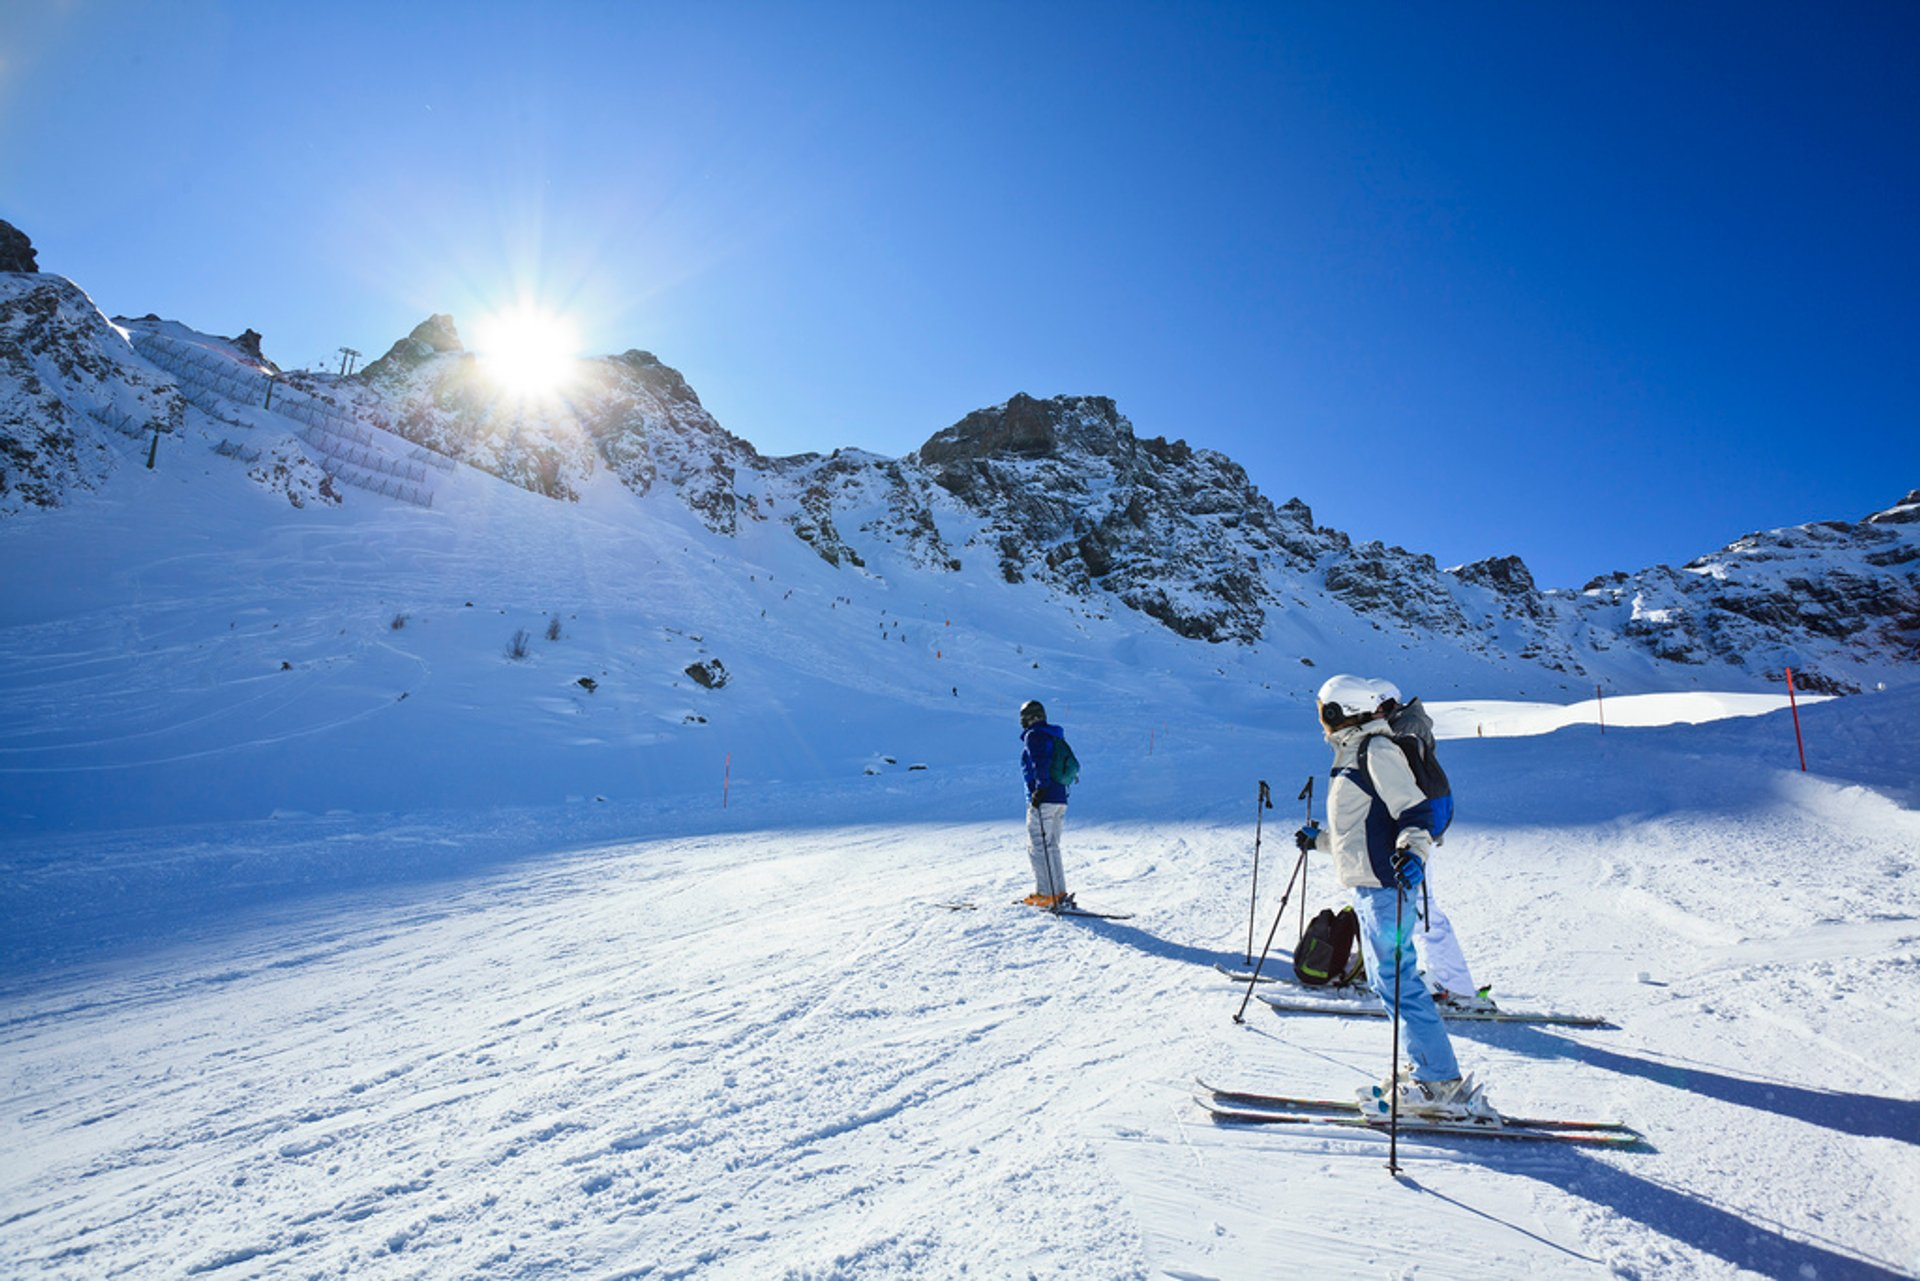 Skiing & Snowboarding in Italy - Best Season 2020